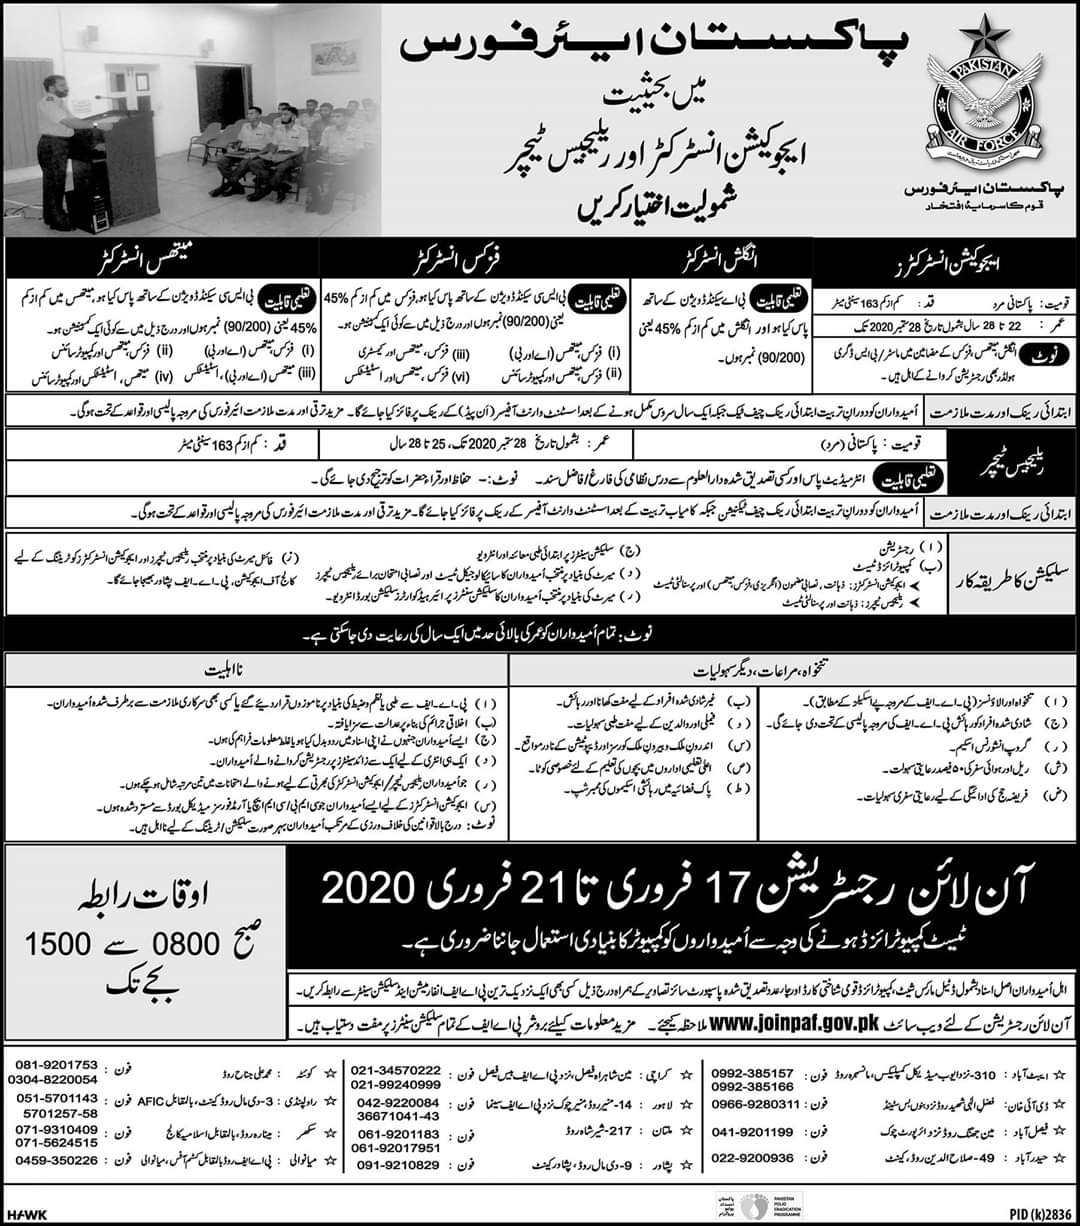 Pakistan Airforce has Announced Multiple Jobs in 2020